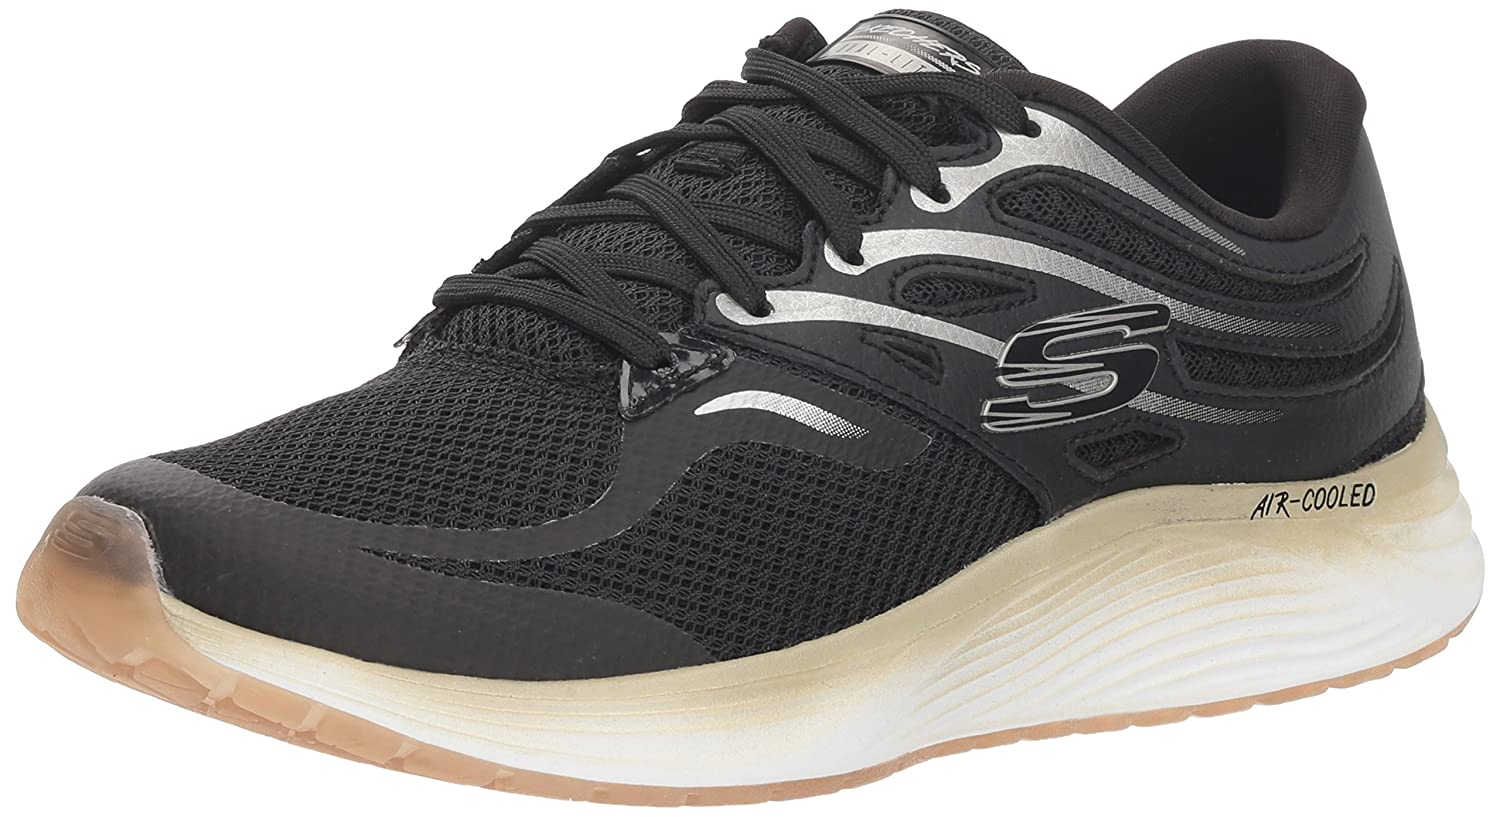 Skechers Women's Skyline Sneaker B078TMTMNT 11 M US|Black/Gold